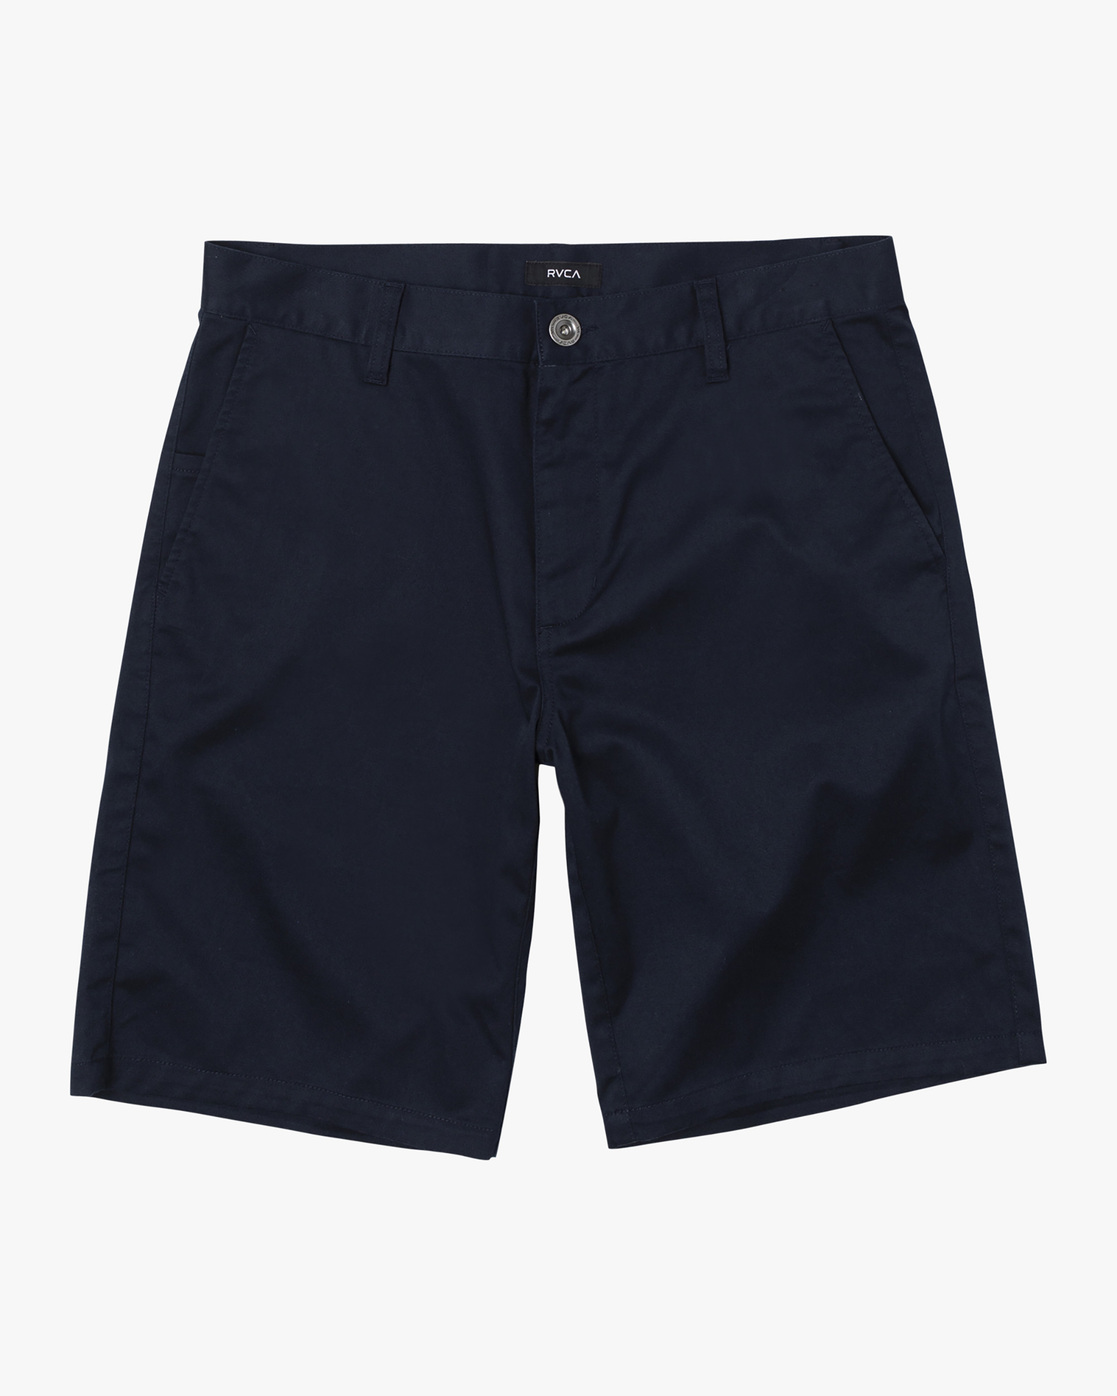 0 BOYS WEEKDAY STRETCH SHORT Blue B240TRWD RVCA